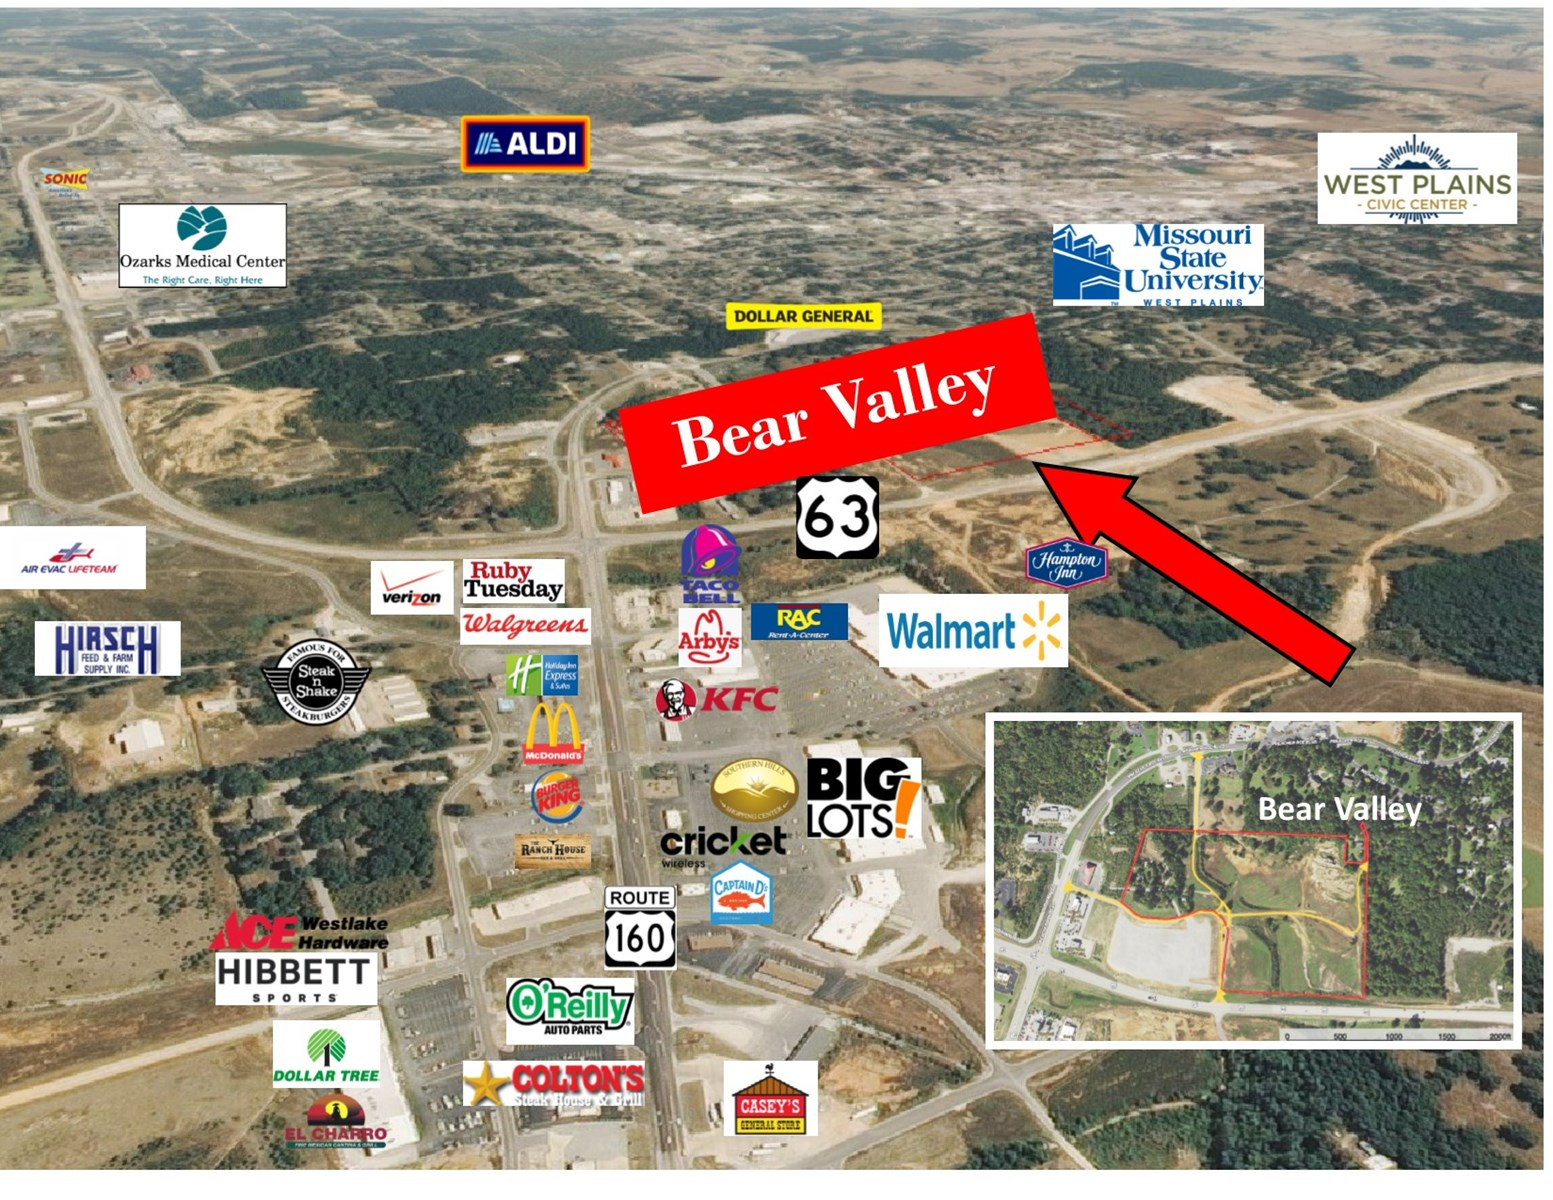 10 Acres Commercial Land - Highway 63 & Hwy 160 Intersection